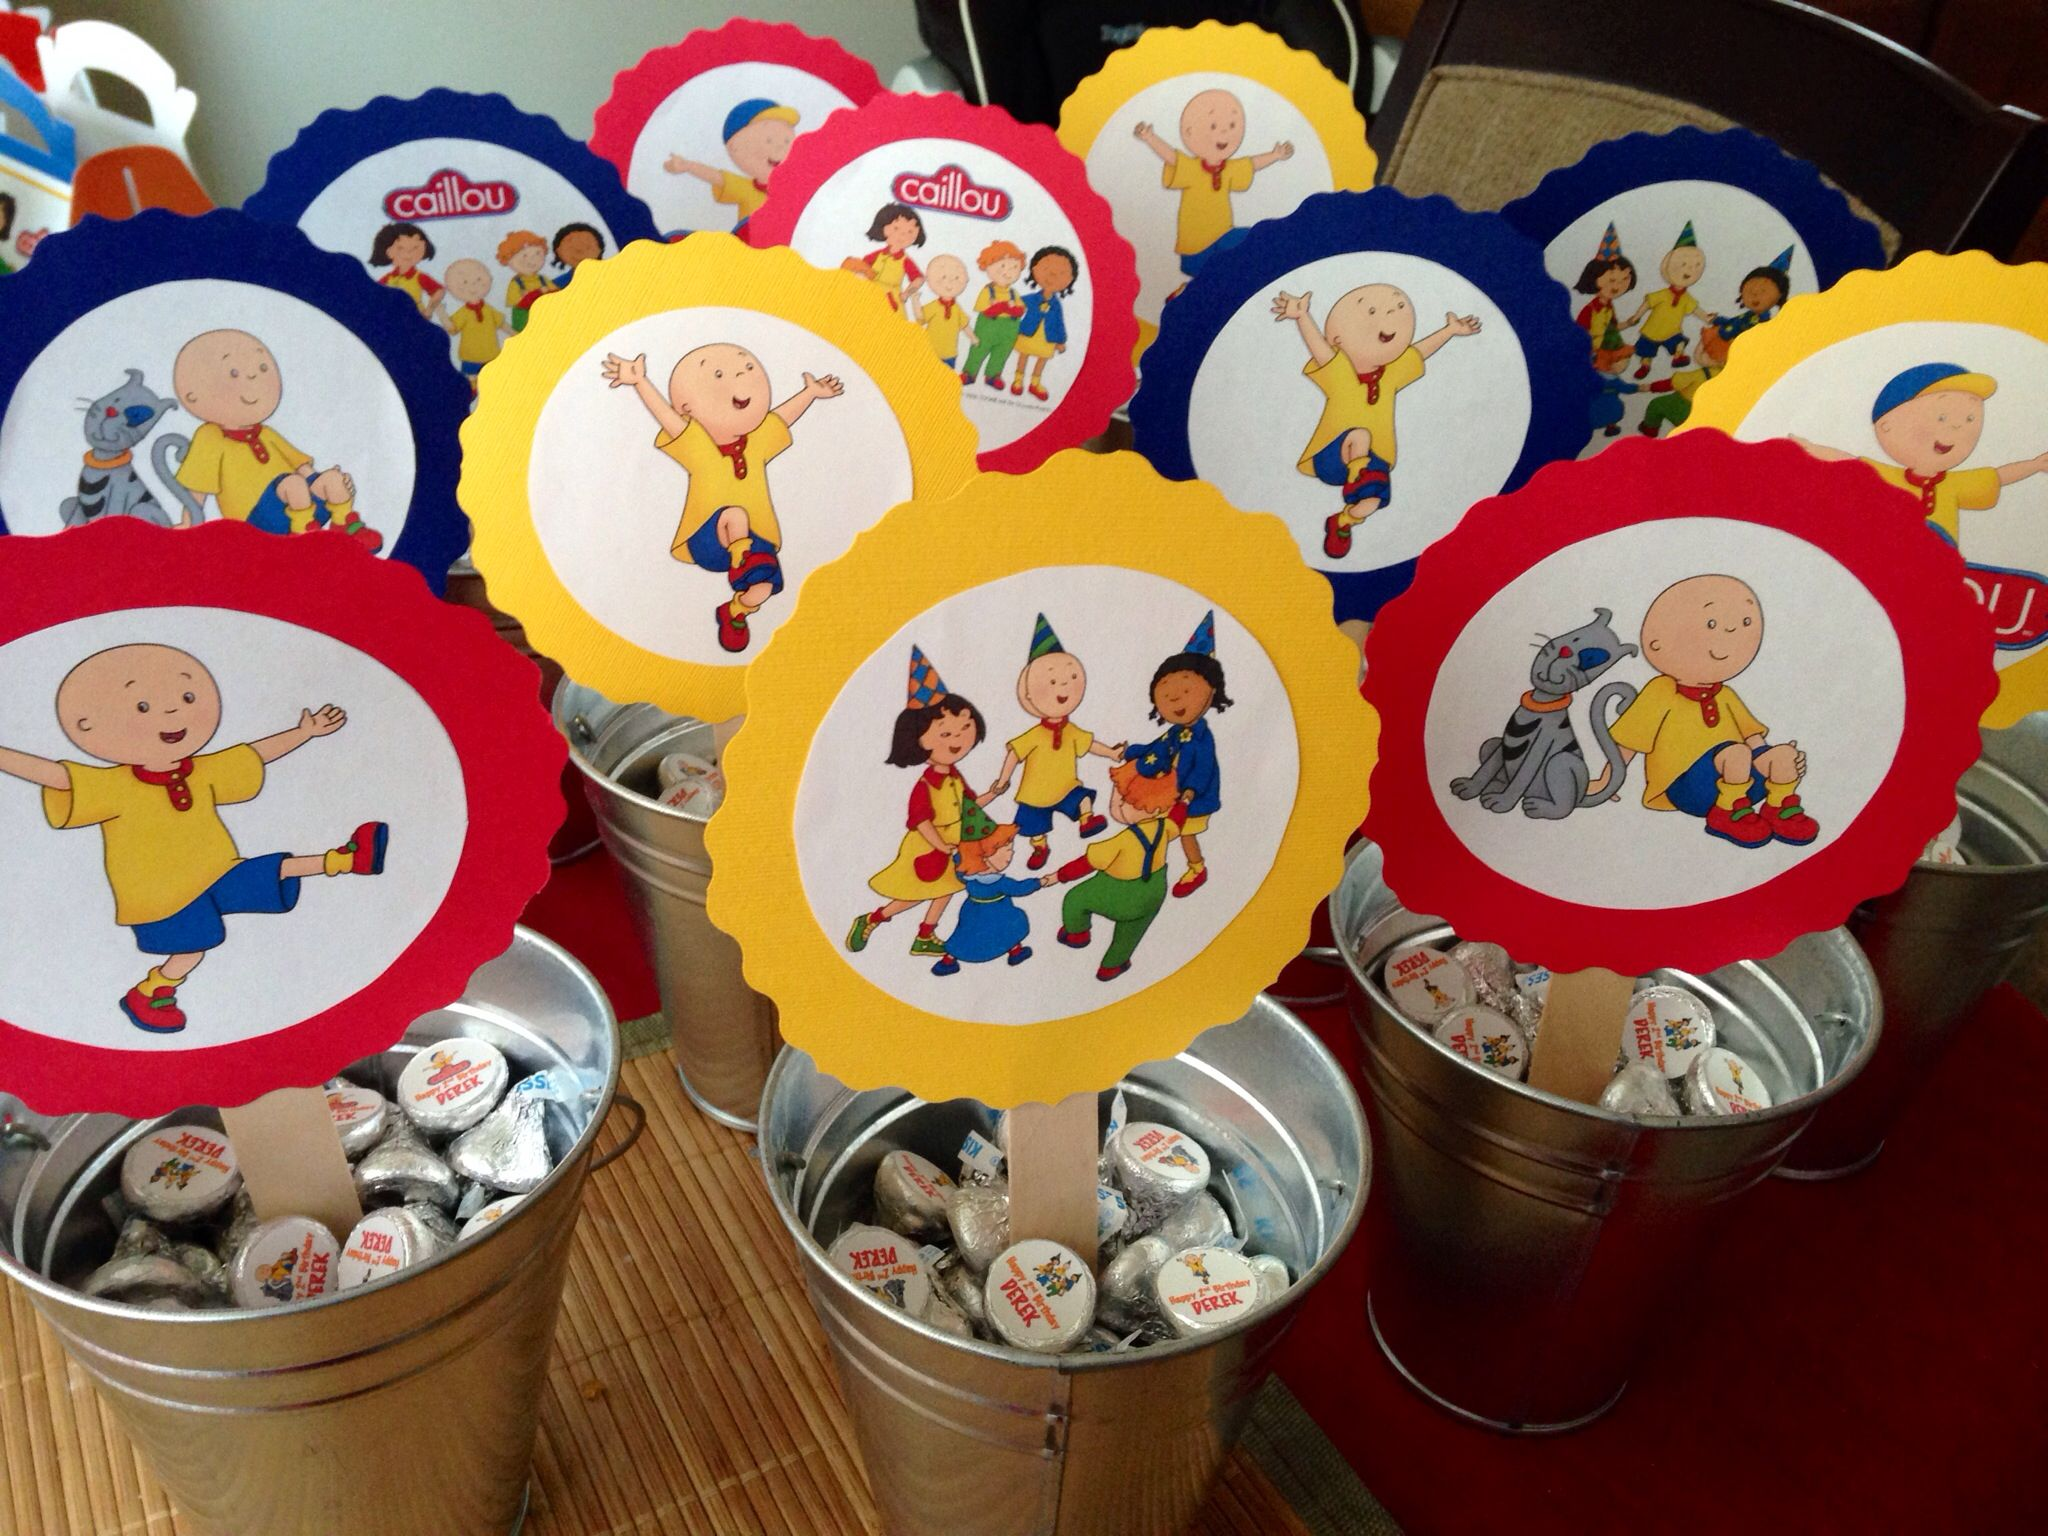 Caillou birthday party centerpieces | Party Ideas | Pinterest ...